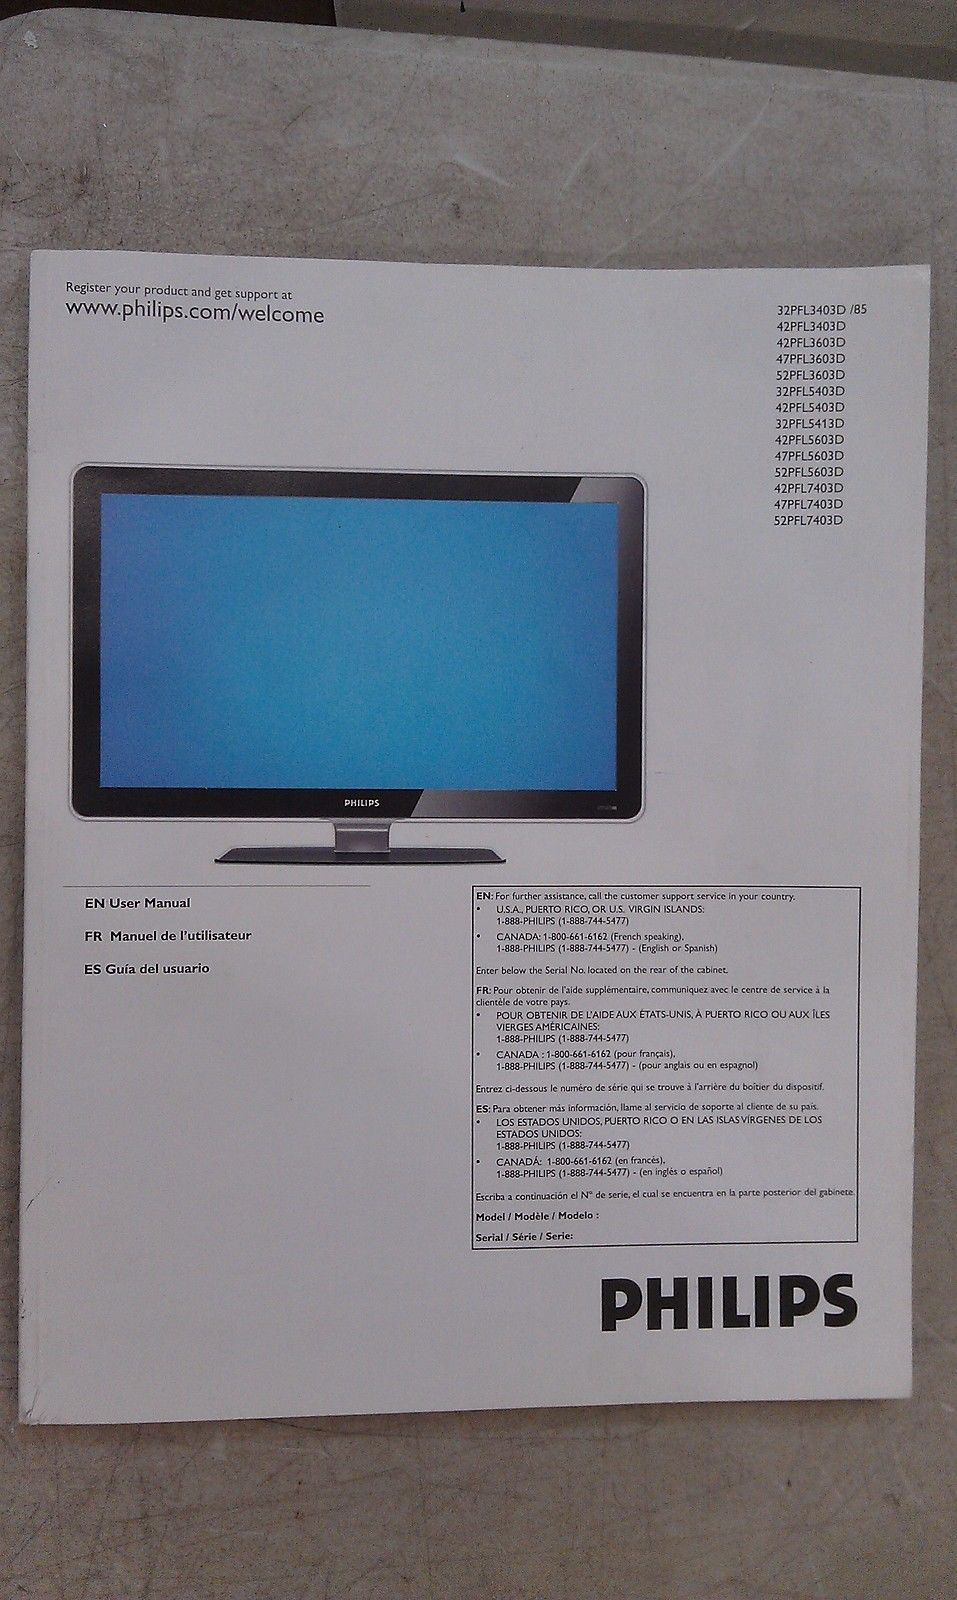 5EE46 PHILIPS LCD 52PFL7403D MANUAL, GOOD CONDITION